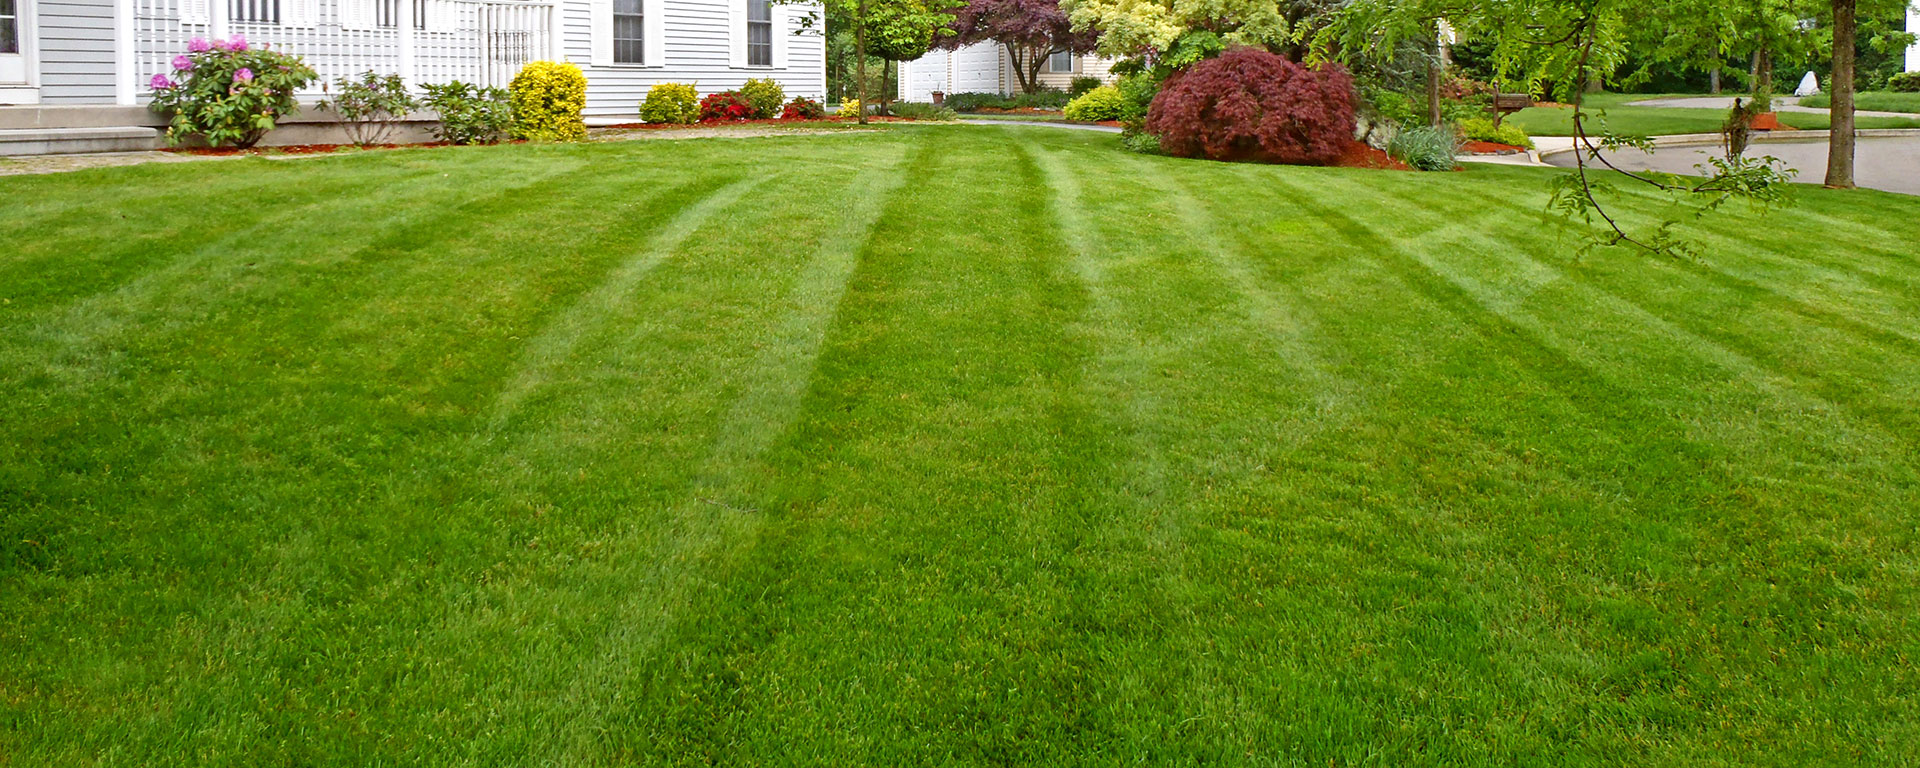 lawn-tip-top-shape-featured